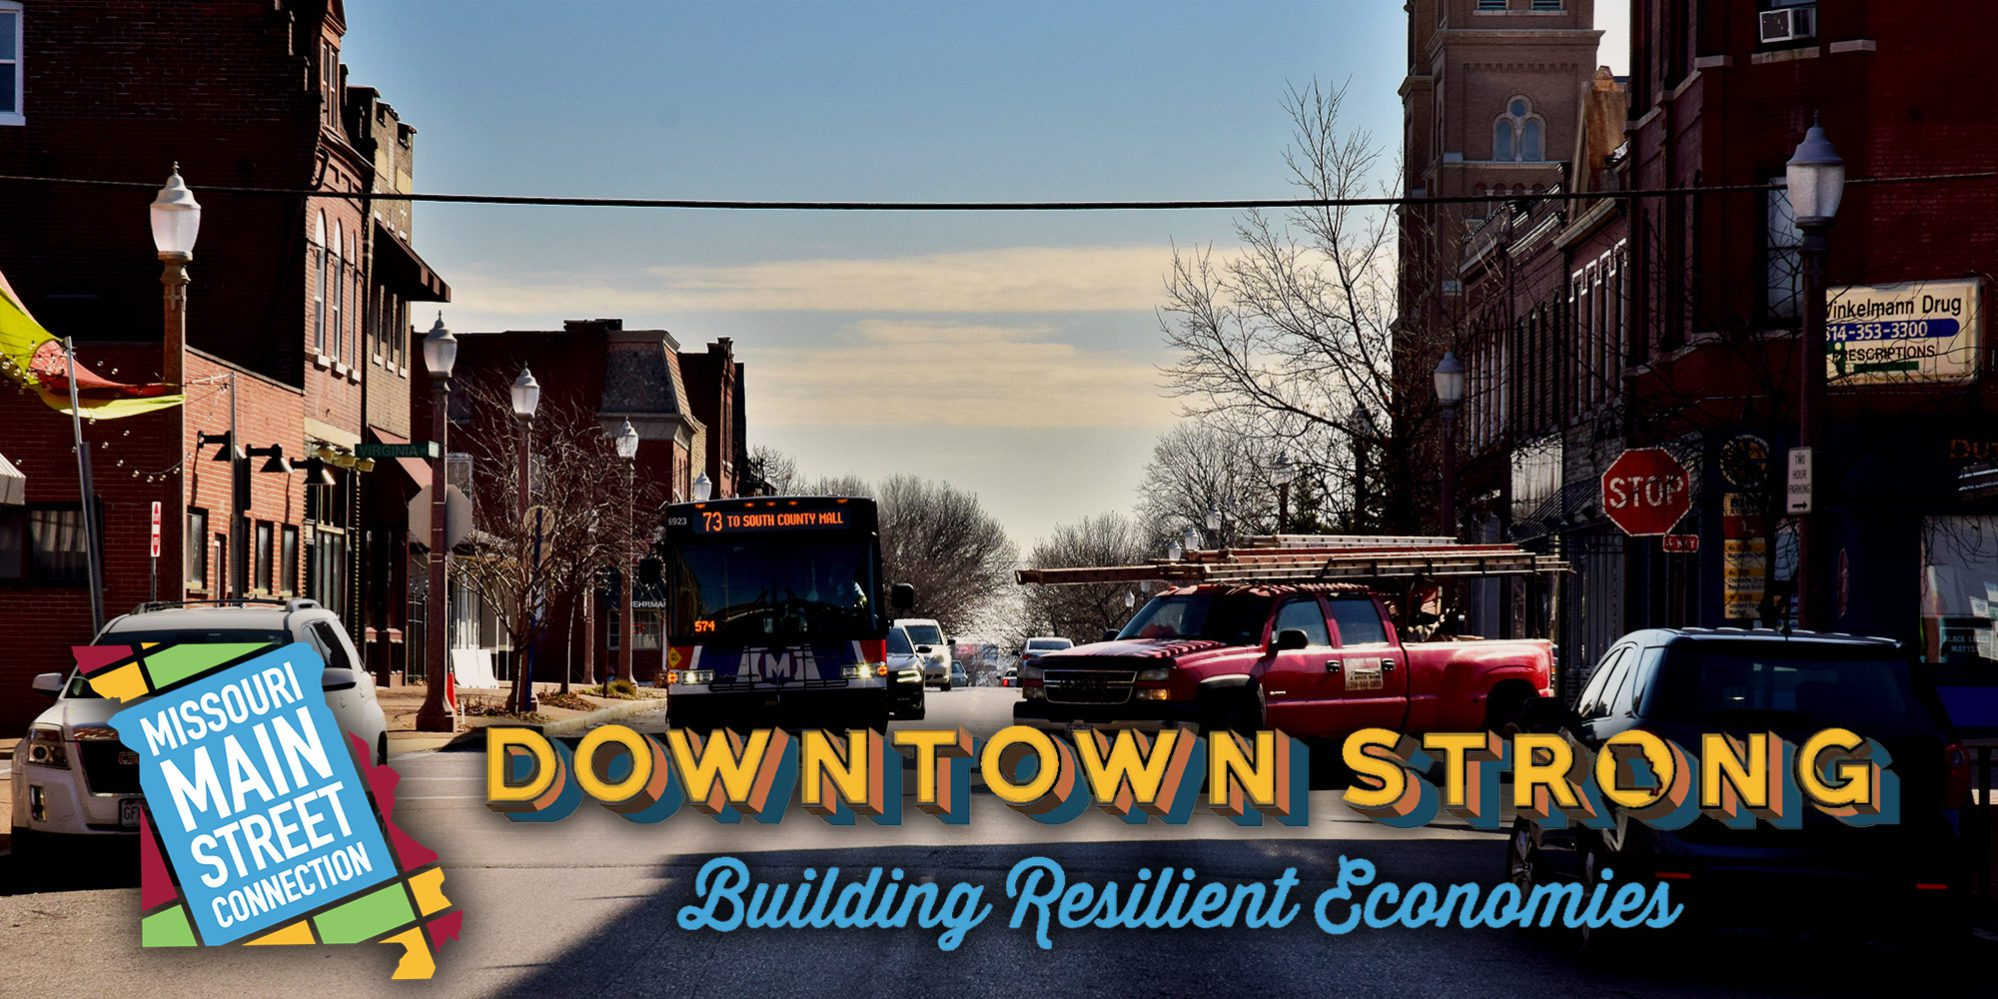 Programa de subvenciones Downtown Strong de Missouri Main Street.